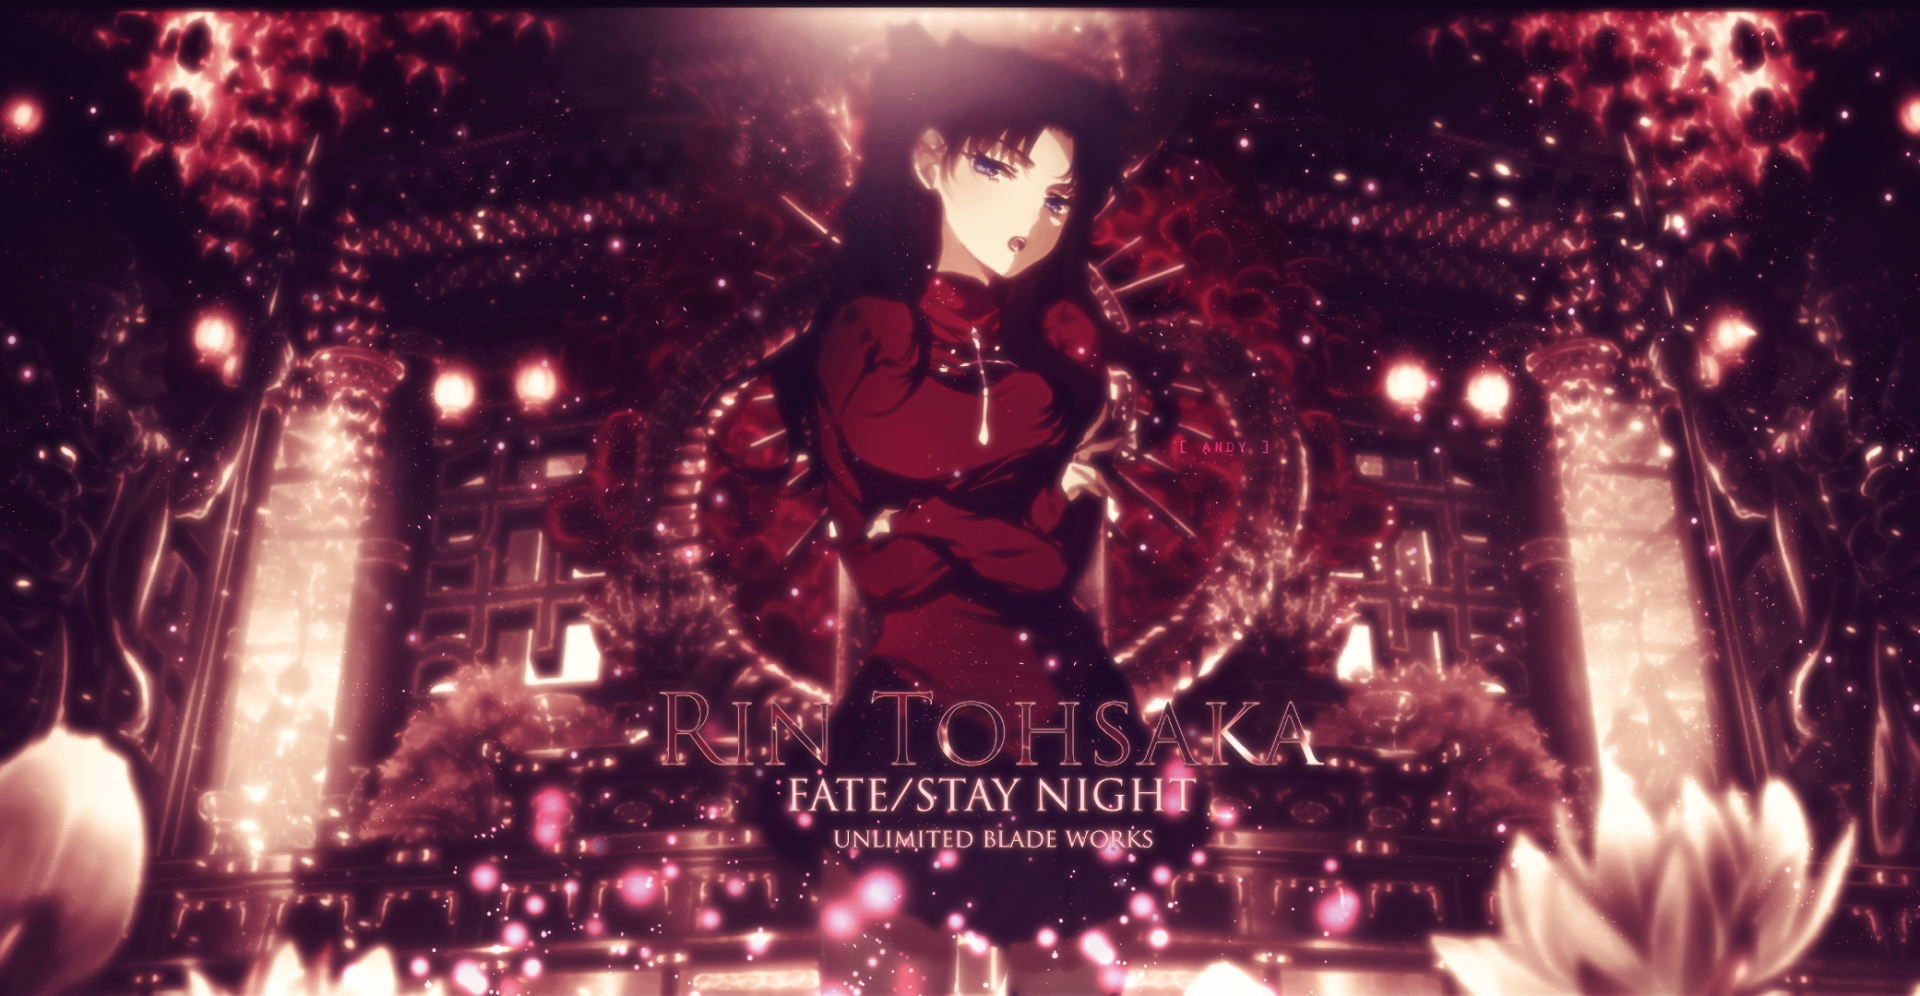 Anime - Fate/Stay Night  Rin Tohsaka Papel de Parede